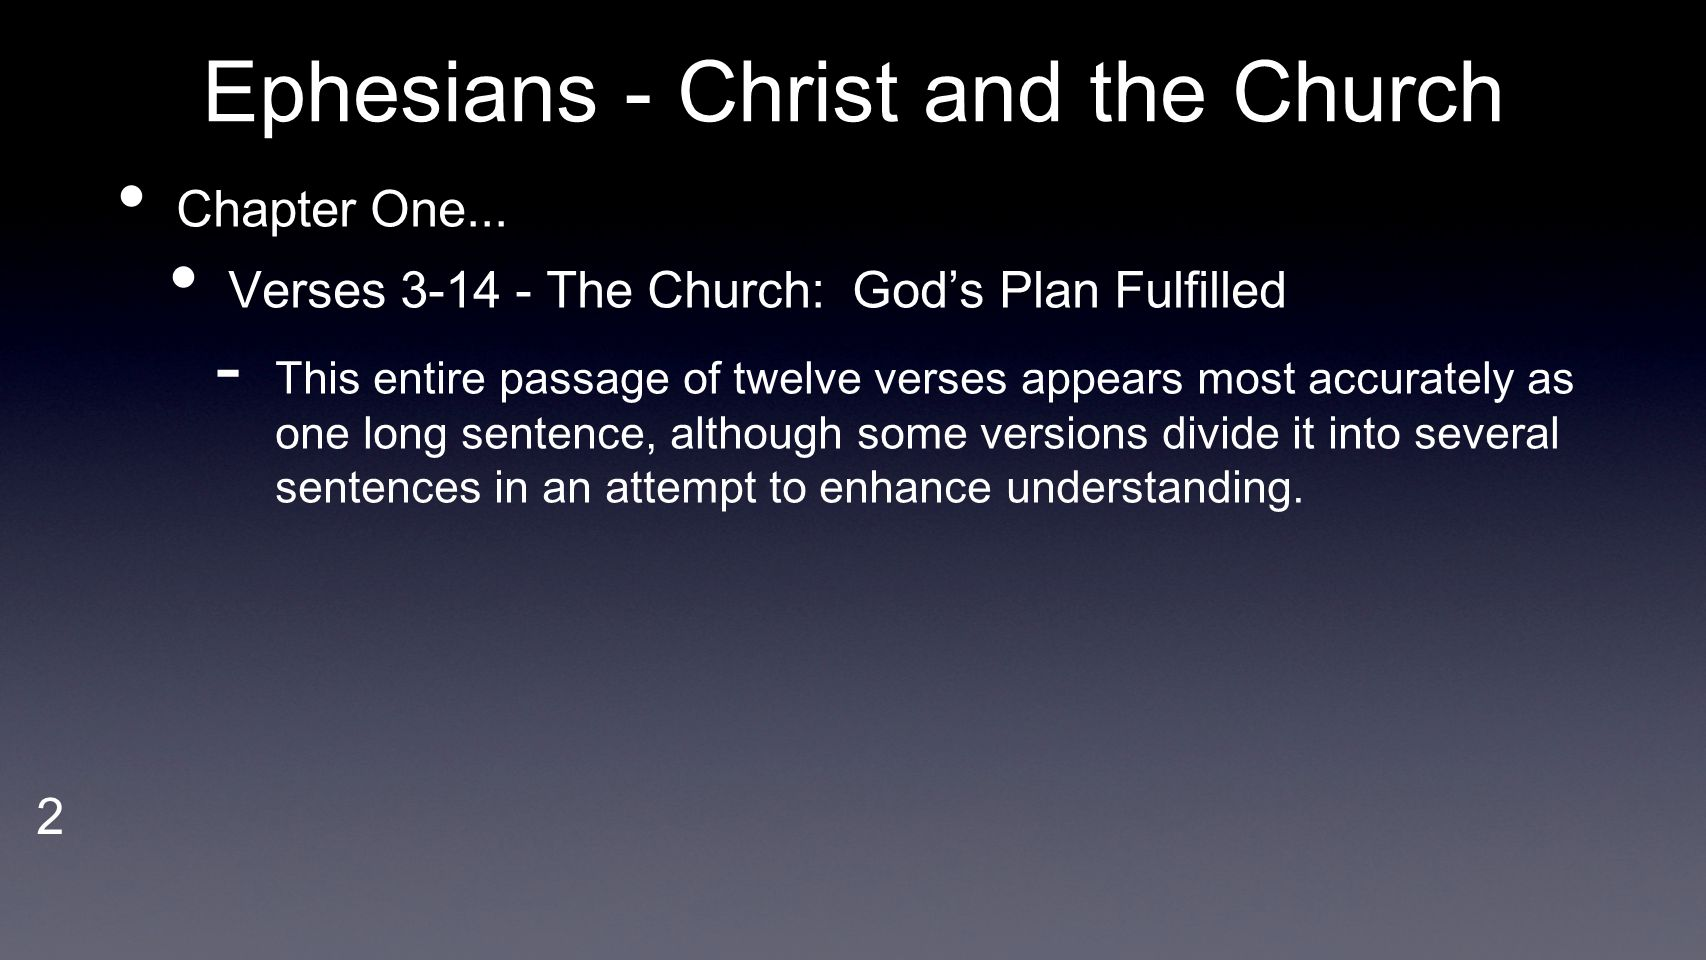 3 Ephesians - Christ and the Church Chapter One...